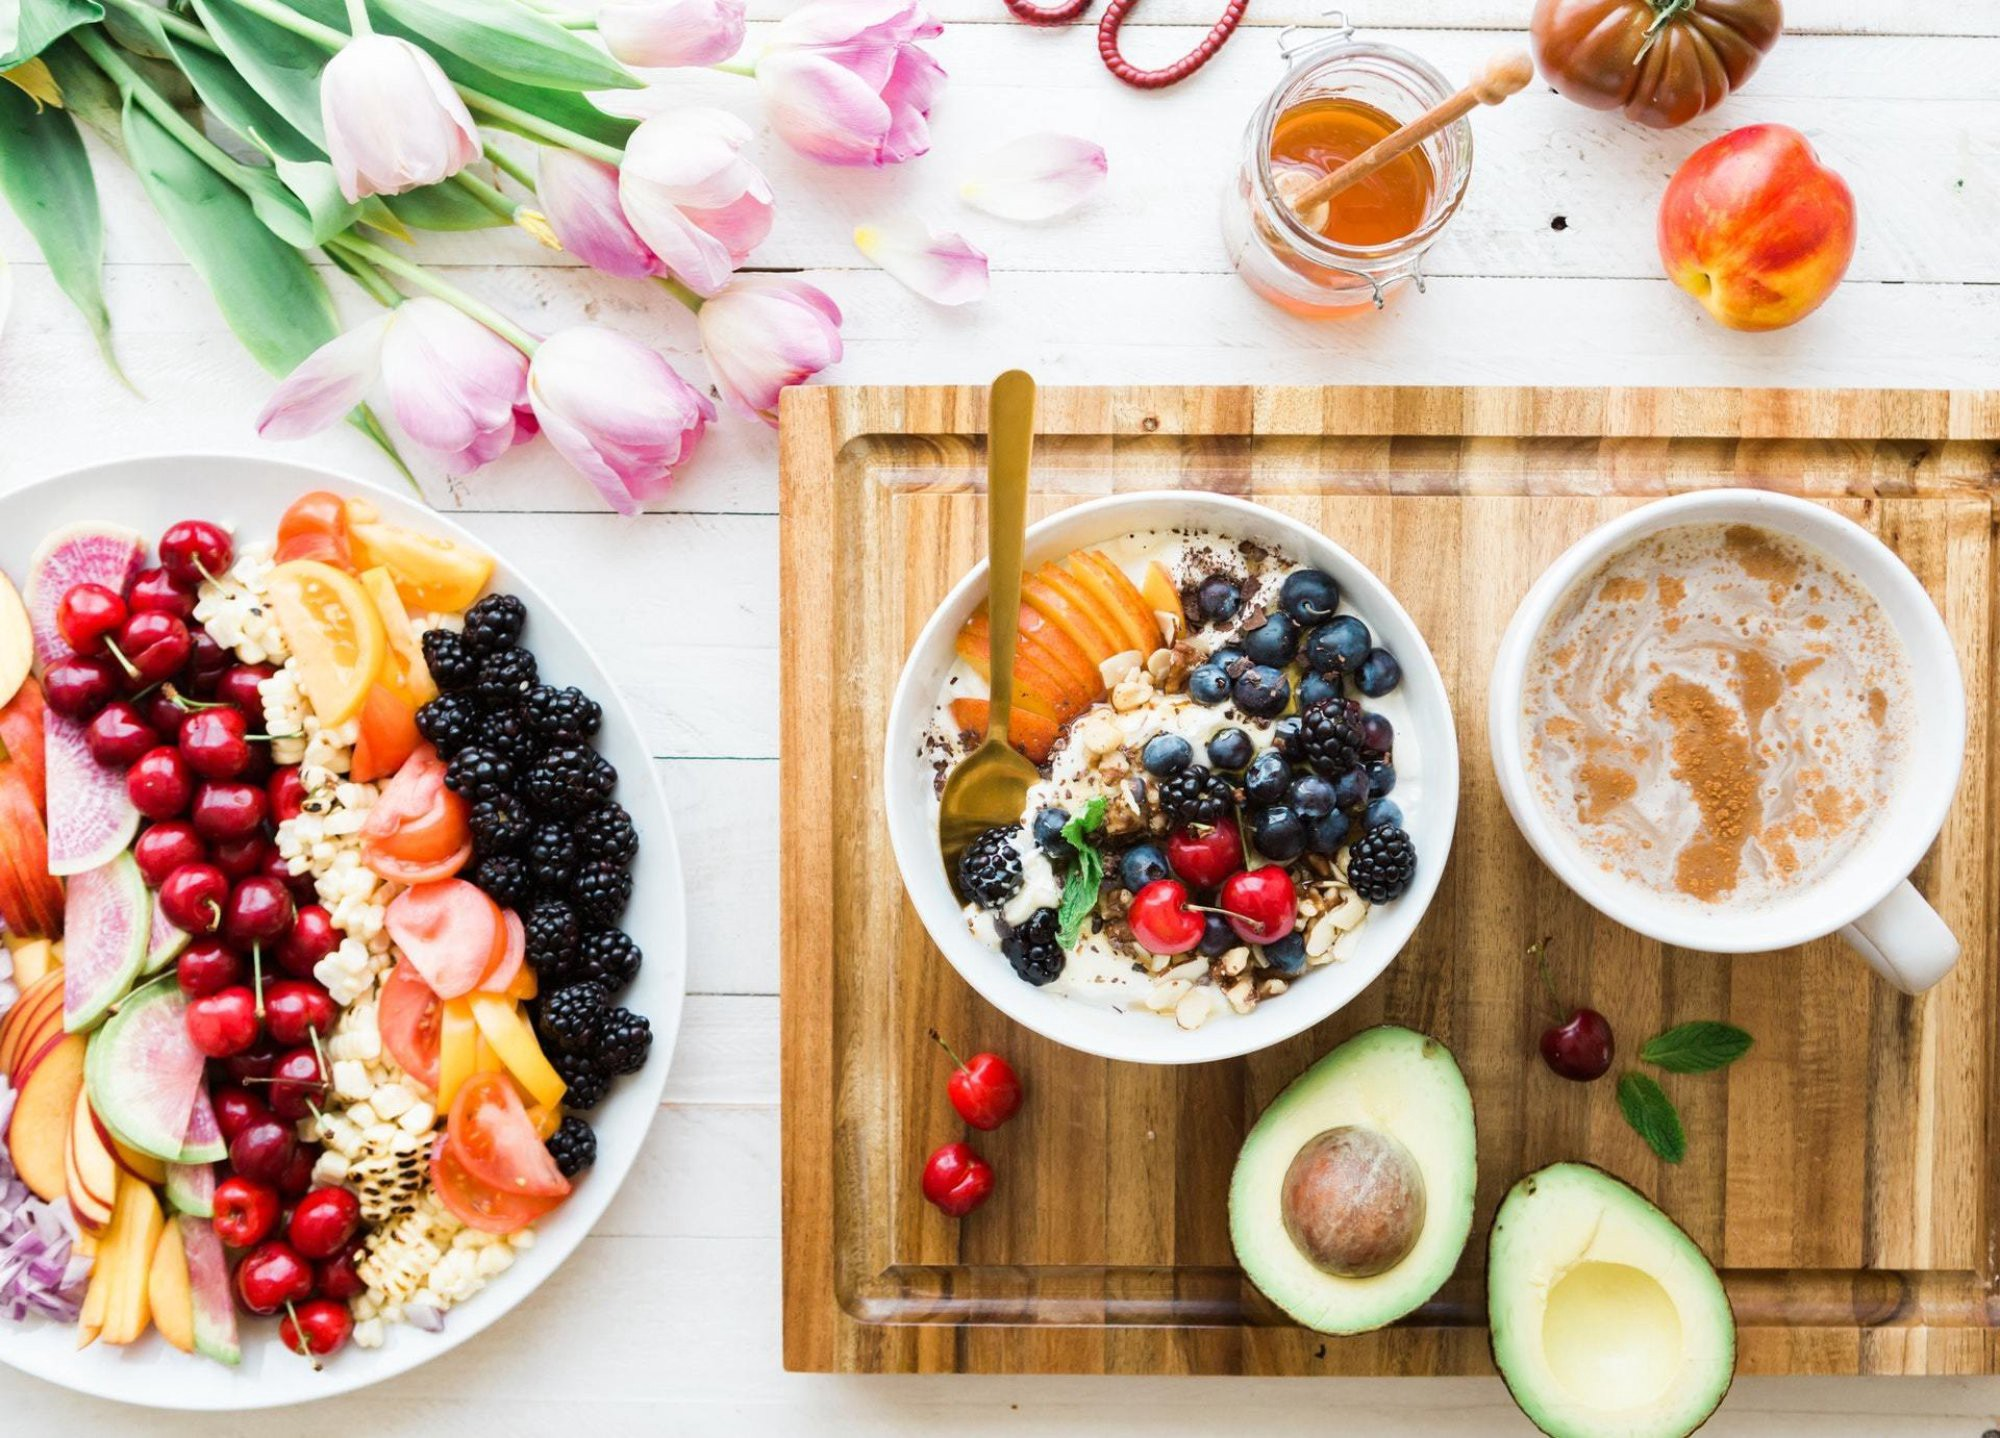 Healthy Eating Habits For 9 To 5 Working Professionals